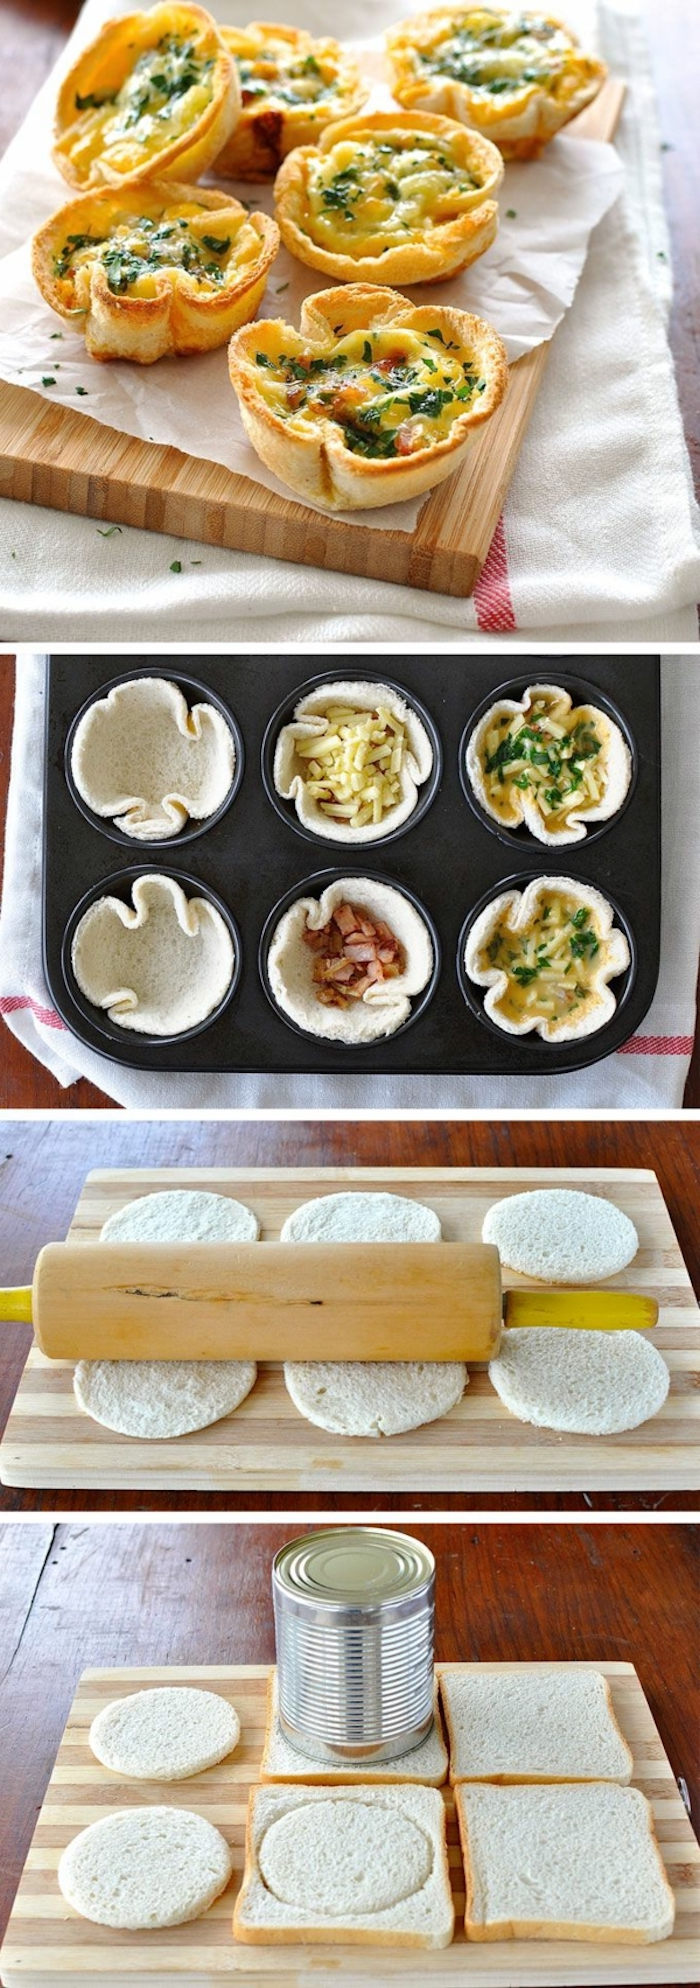 bread muffins, step by step, diy tutorial, easy brunch recipes, photo collage